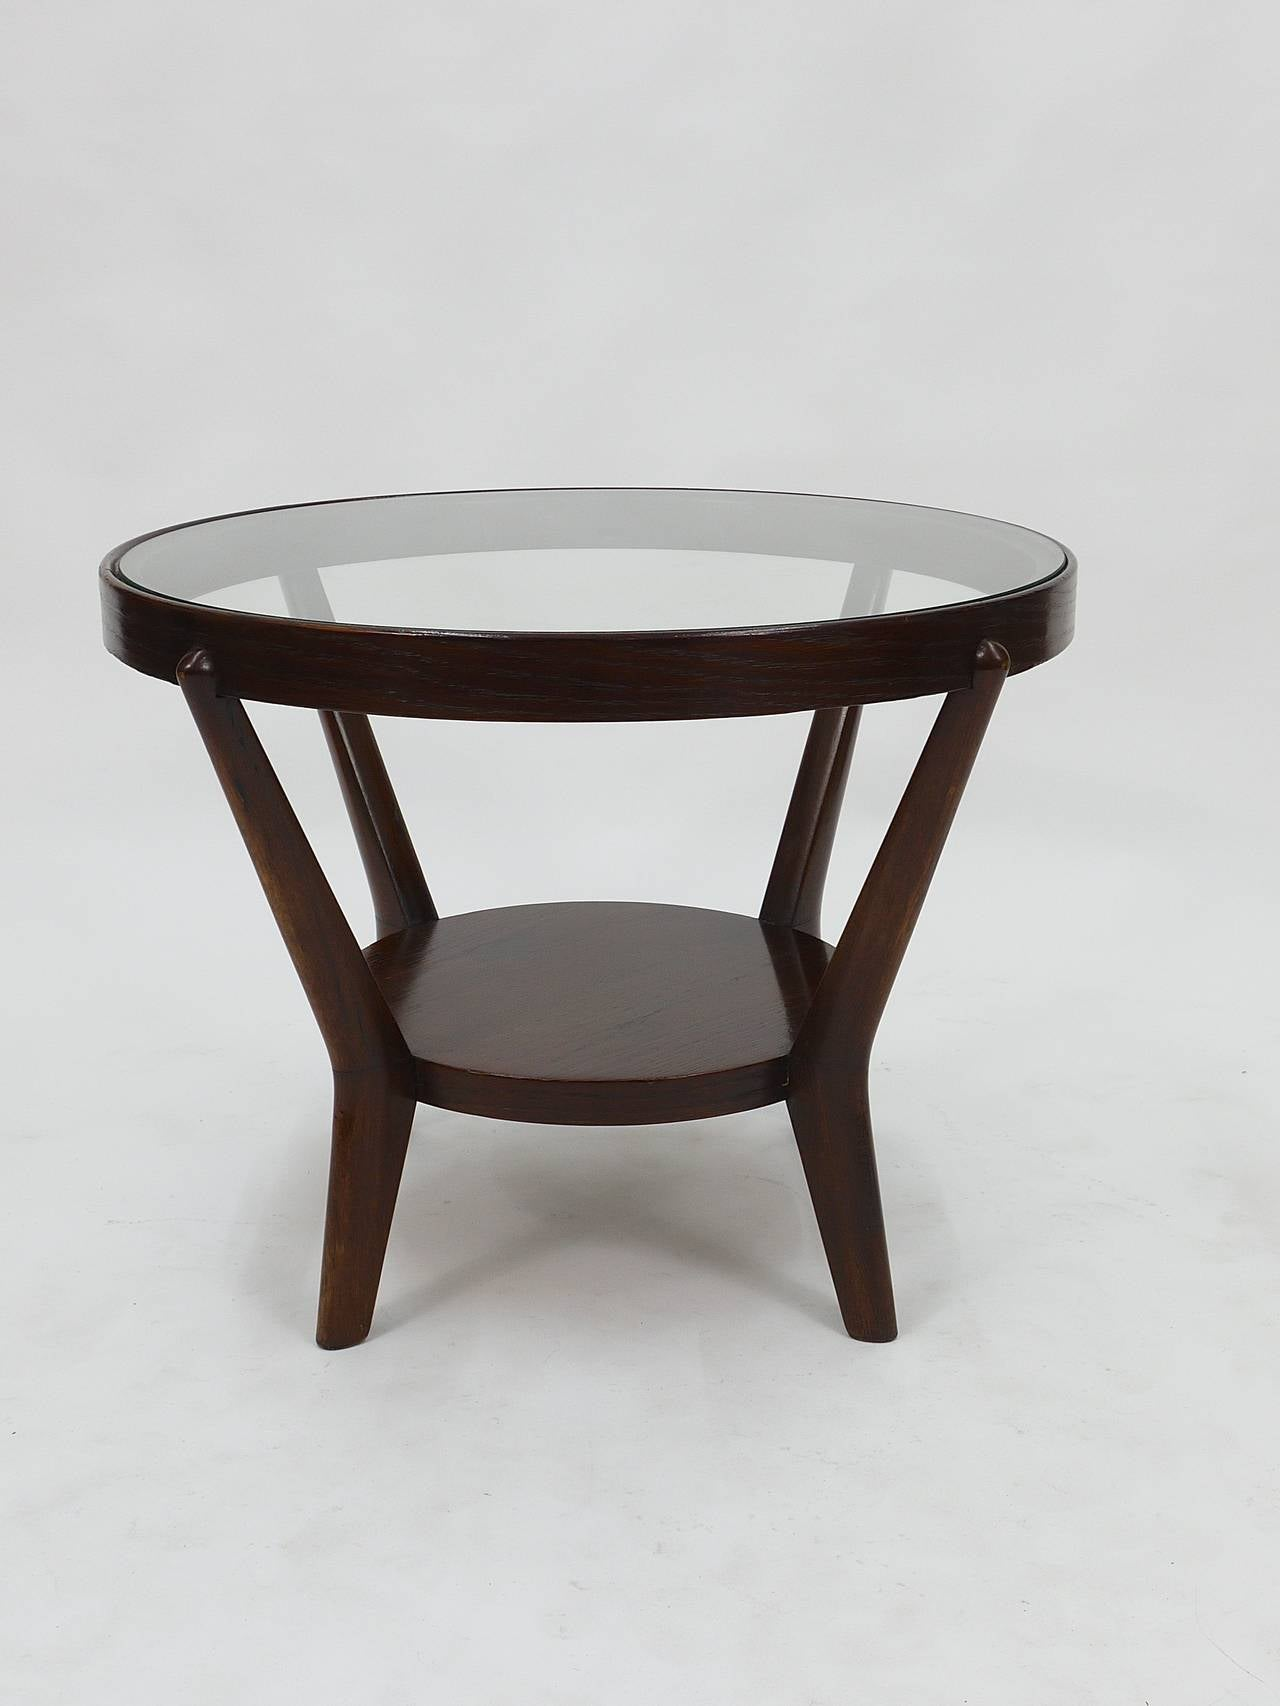 Charming 1930s Round Art Deco Side Table By Jindrich Halabala, Excellent Condition 3